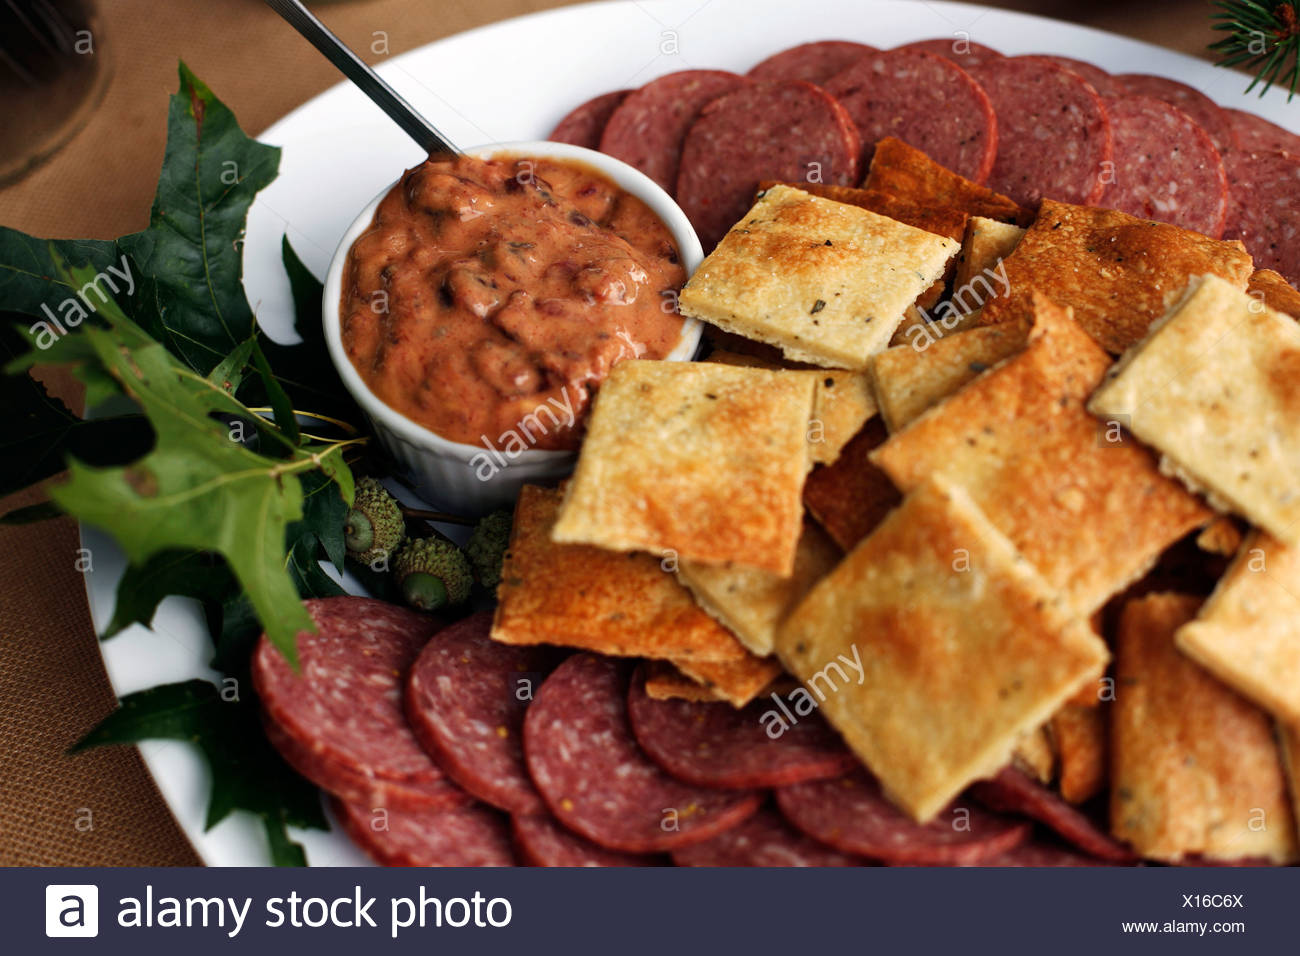 Local meats including venison and bison summer sausage. - Stock Image